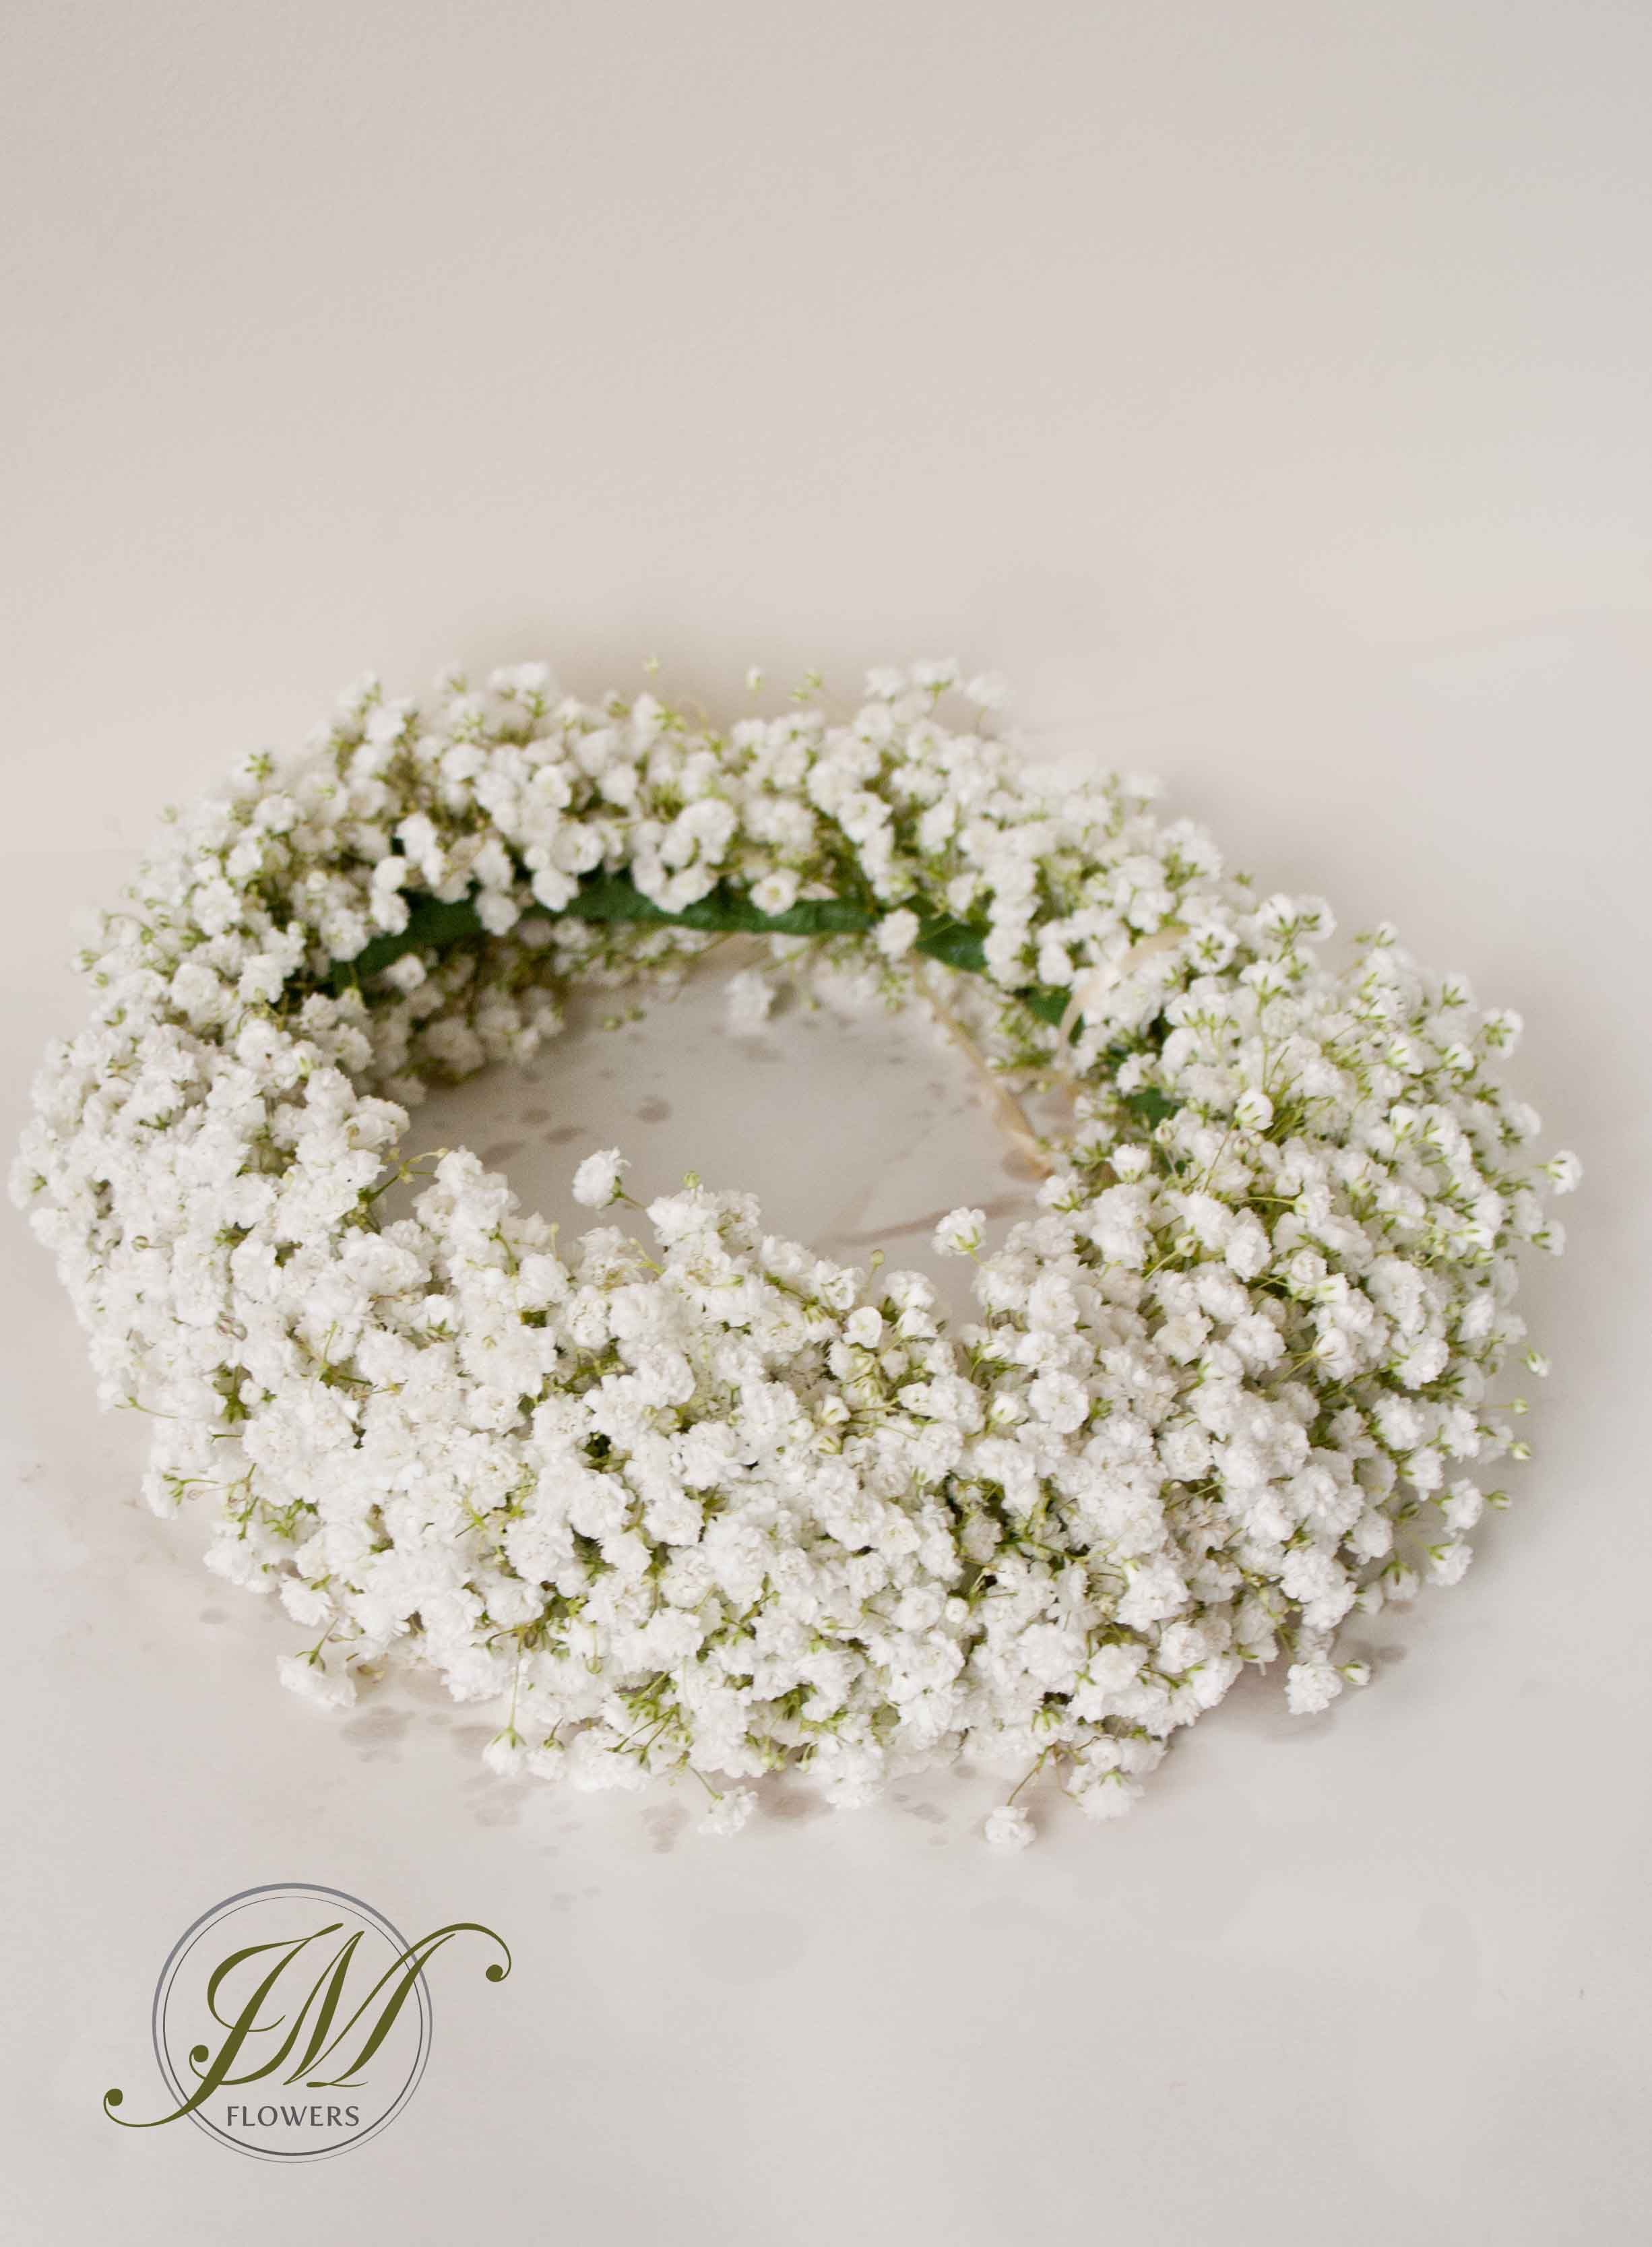 White gypsophila floral crown bridesmaids flowers pinterest white gypsophila floral crown mightylinksfo